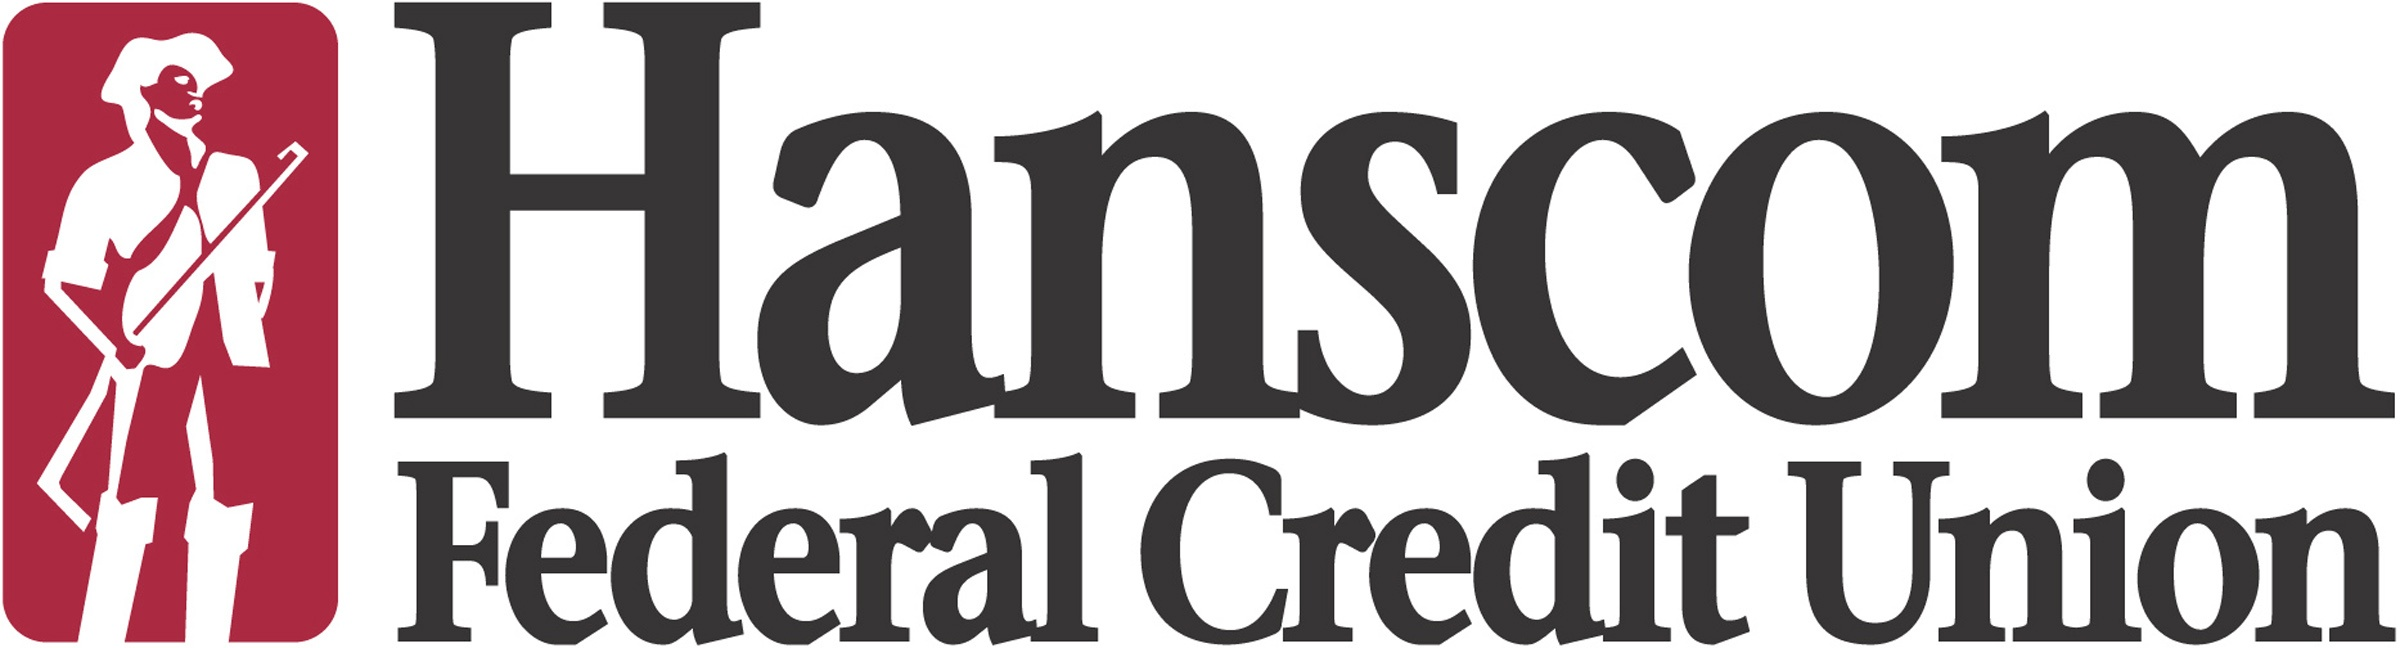 Hanscom-Federal-Credit-Union